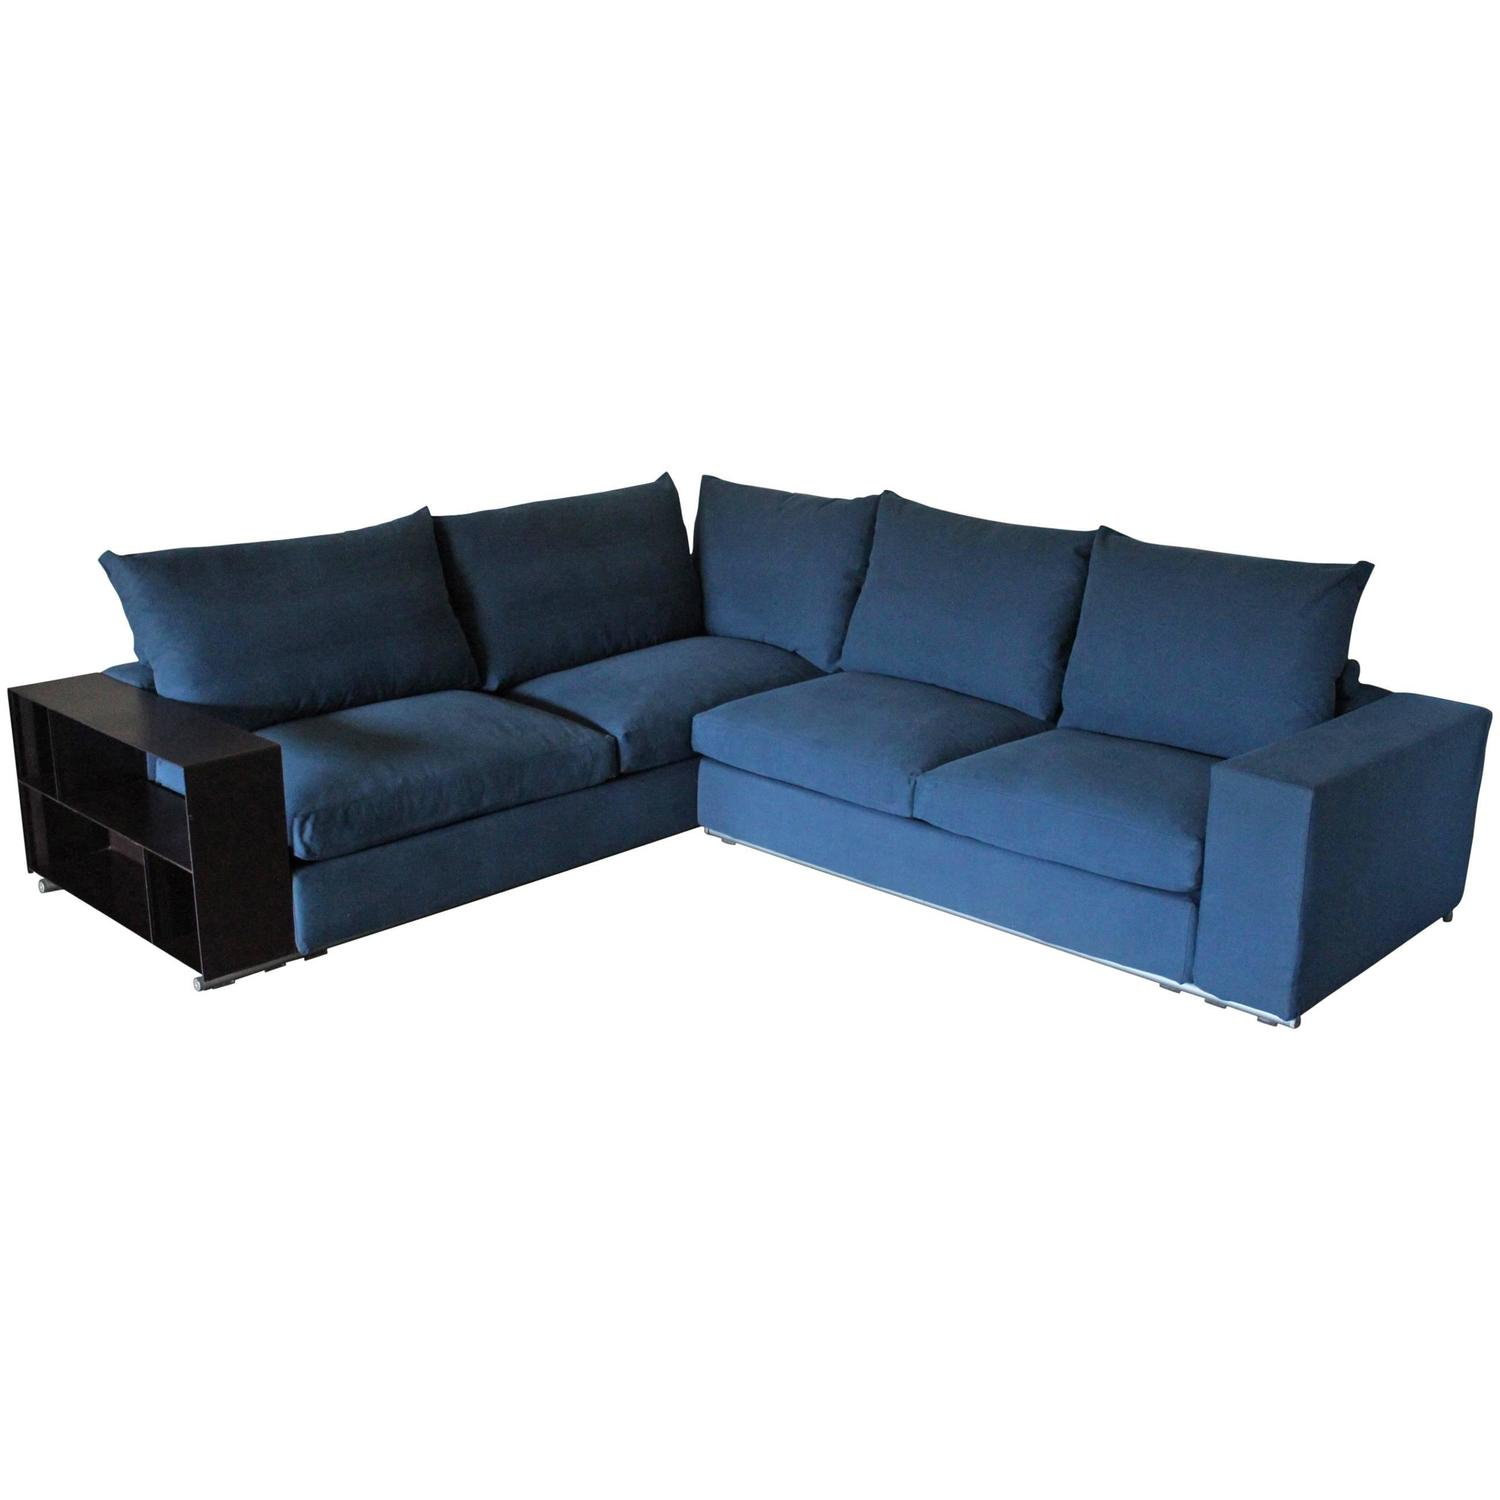 Two Piece George Sectional by Antonio Citterio for B&B Italia